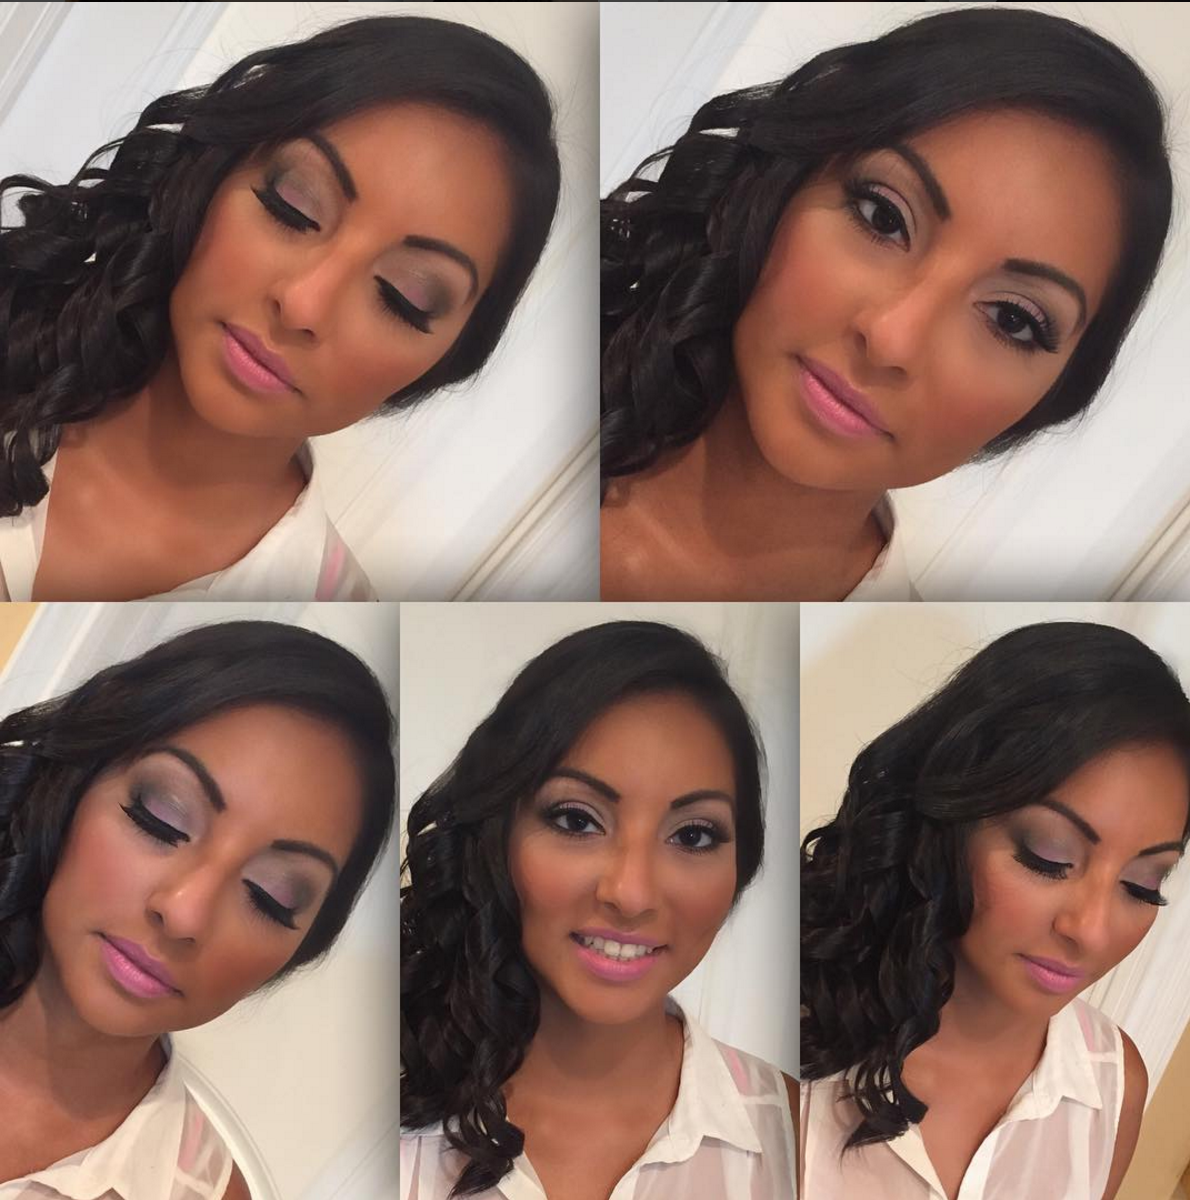 Airbrush makeup by Bria